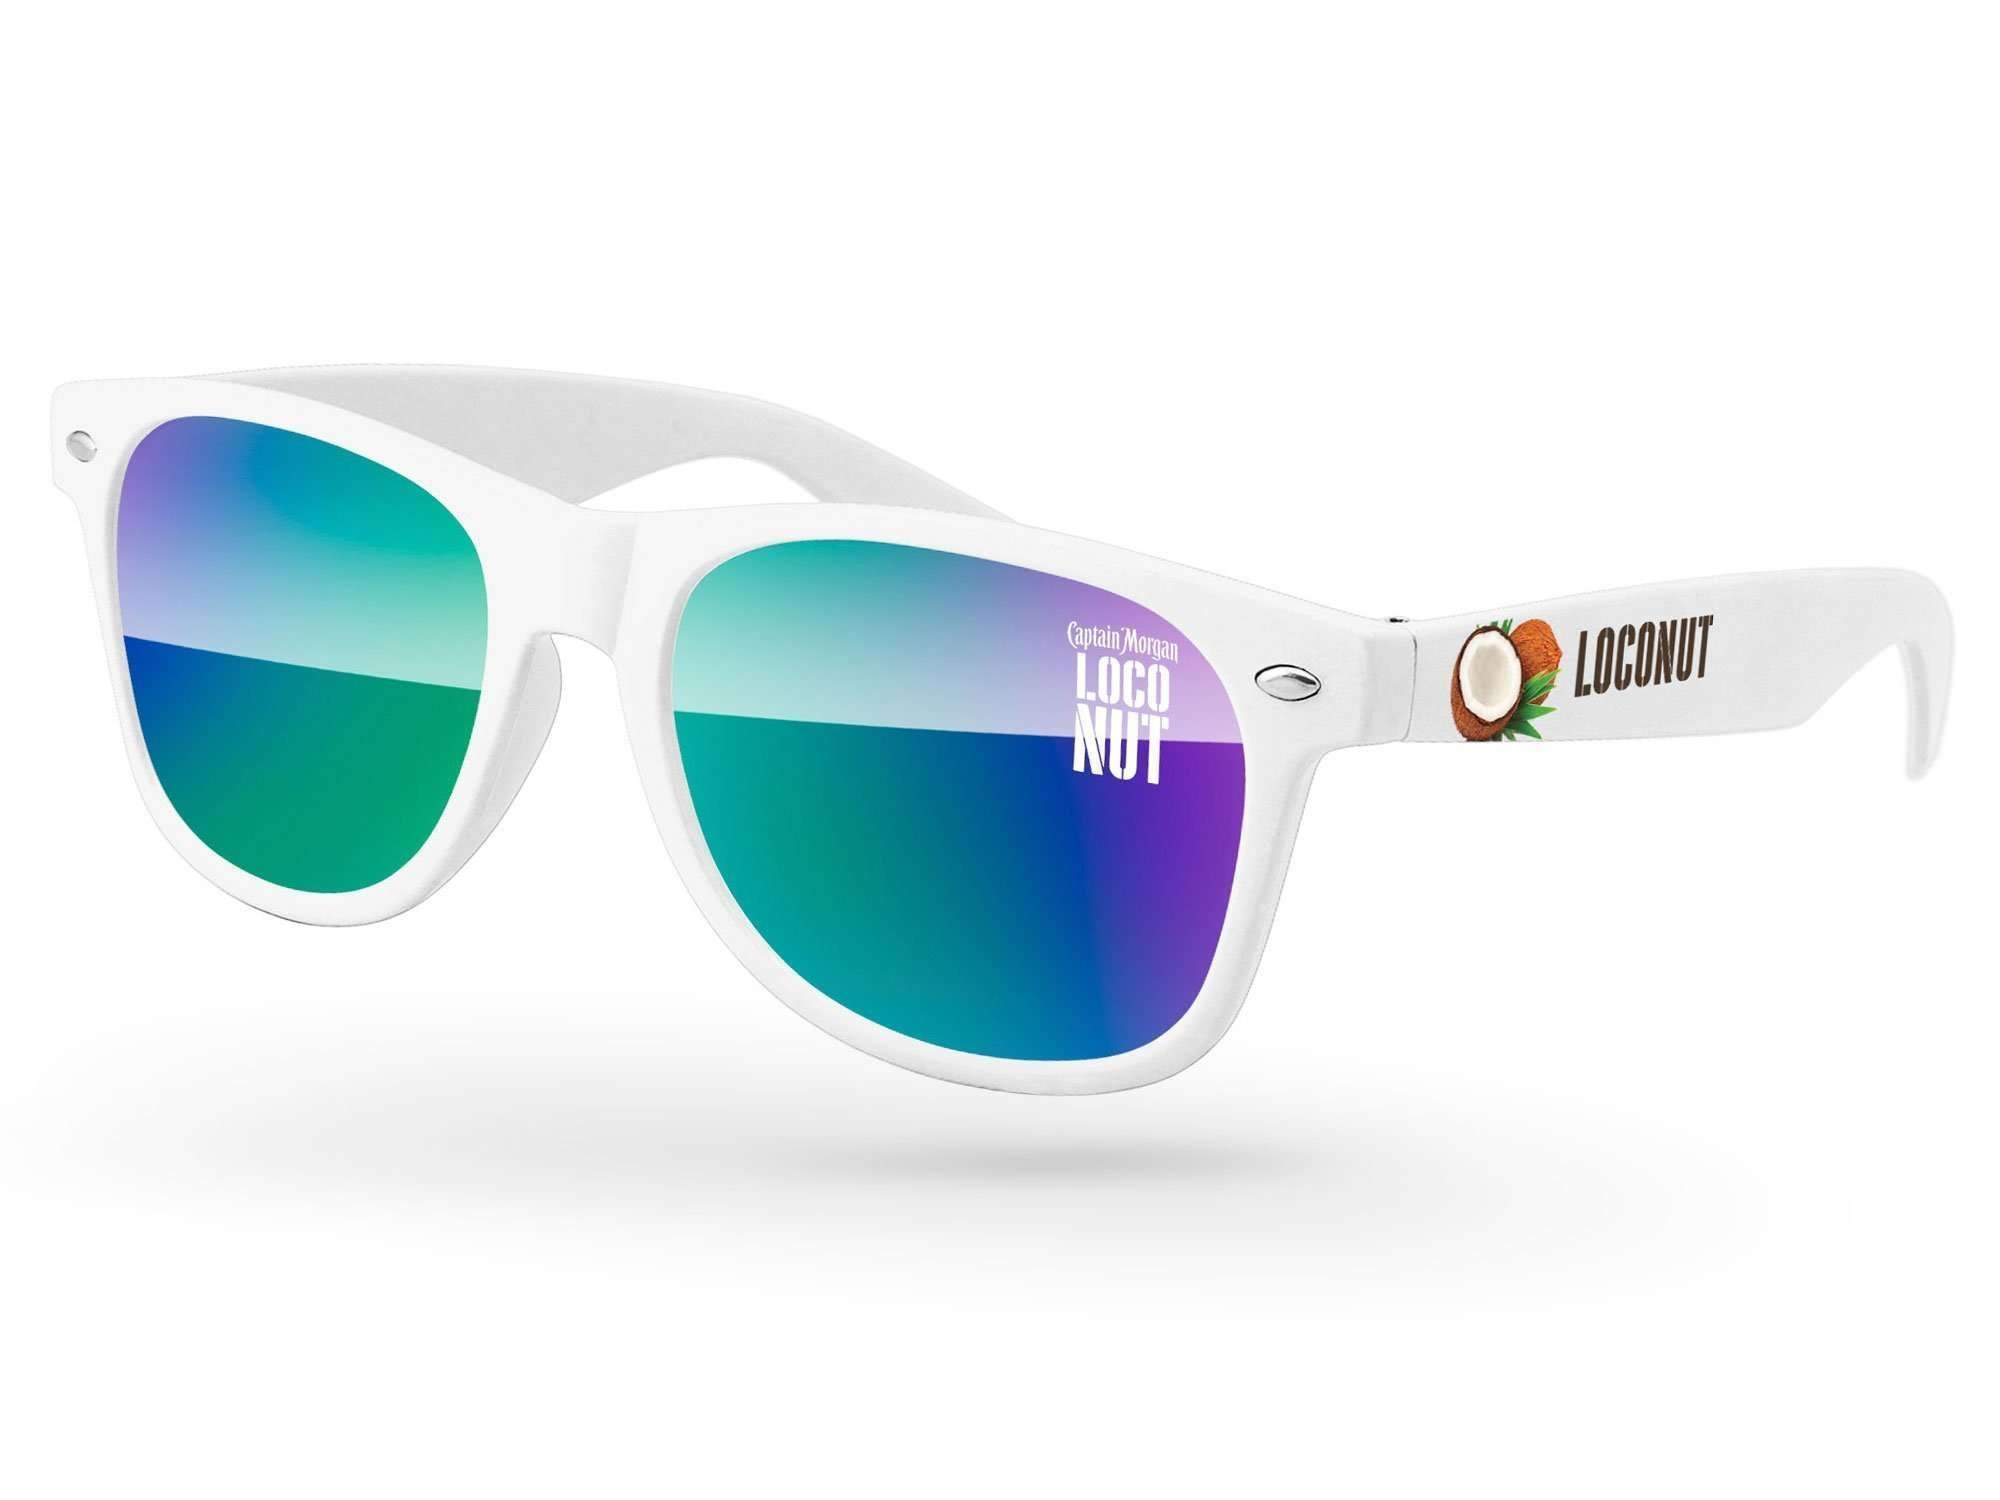 RM520 - Retro Mirror Promotional Sunglasses w/ 1-color lens imprint and full-color temple imprint